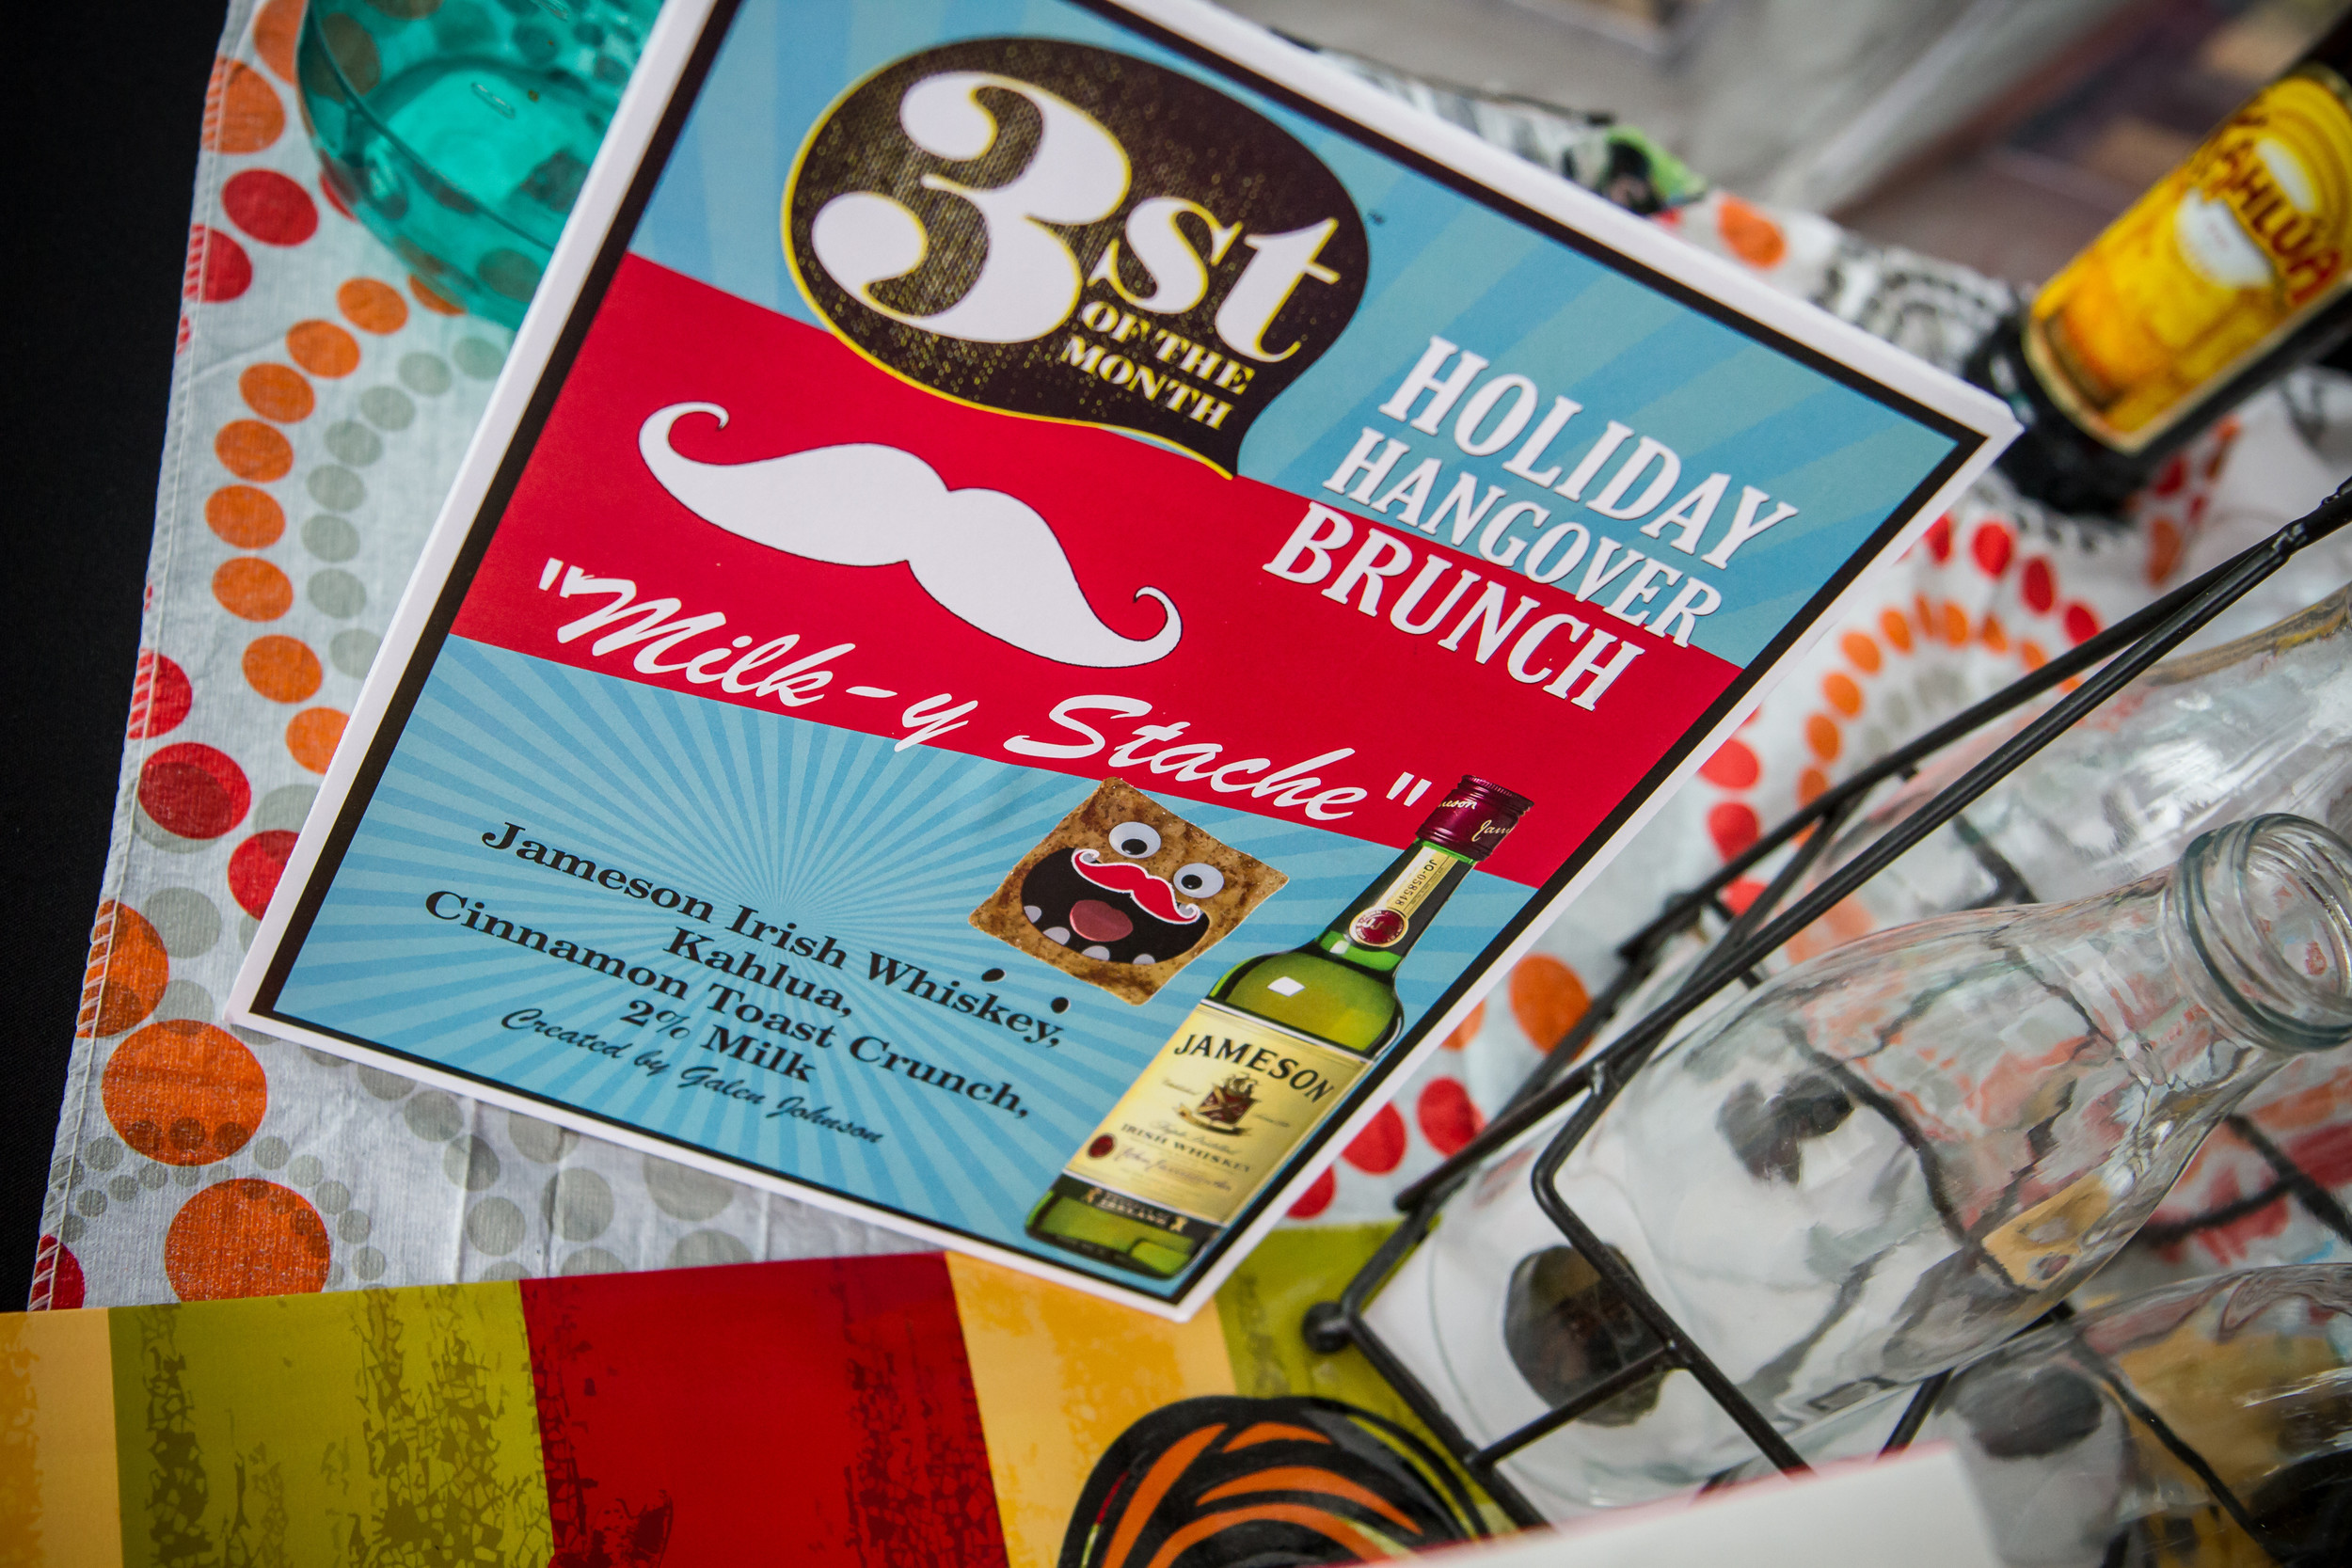 0678-3st Of The Month_Holiday Hangover Brunch.jpg